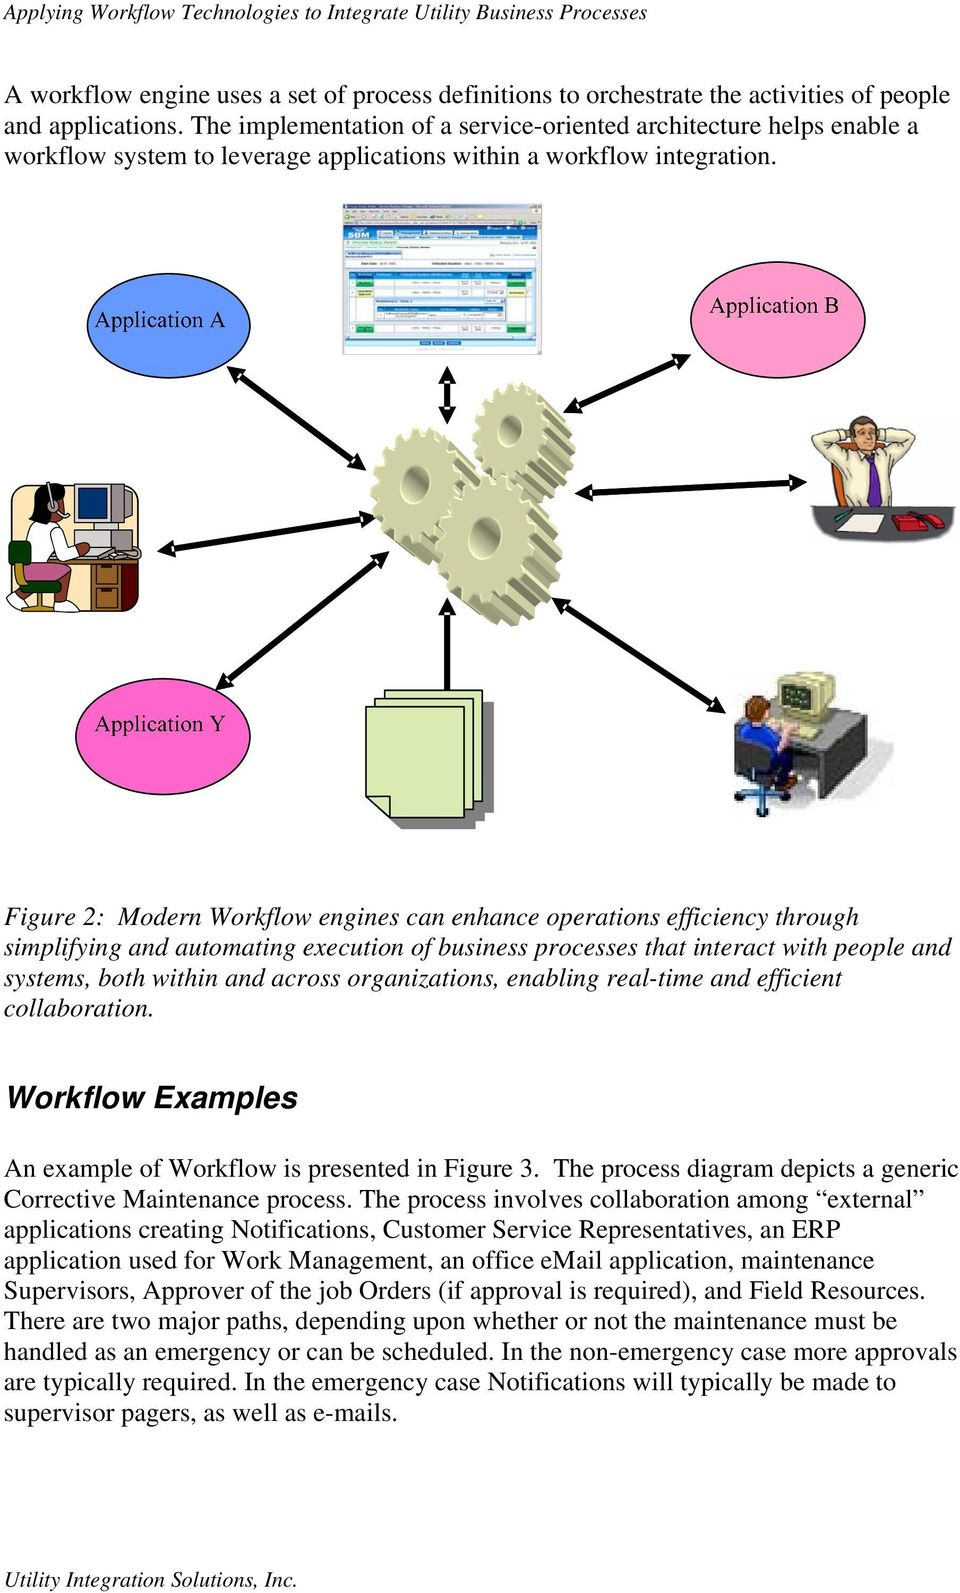 Figure 2: Modern Workflow engines can enhance operations efficiency through simplifying and automating execution of business processes that interact with people and systems, both within and across